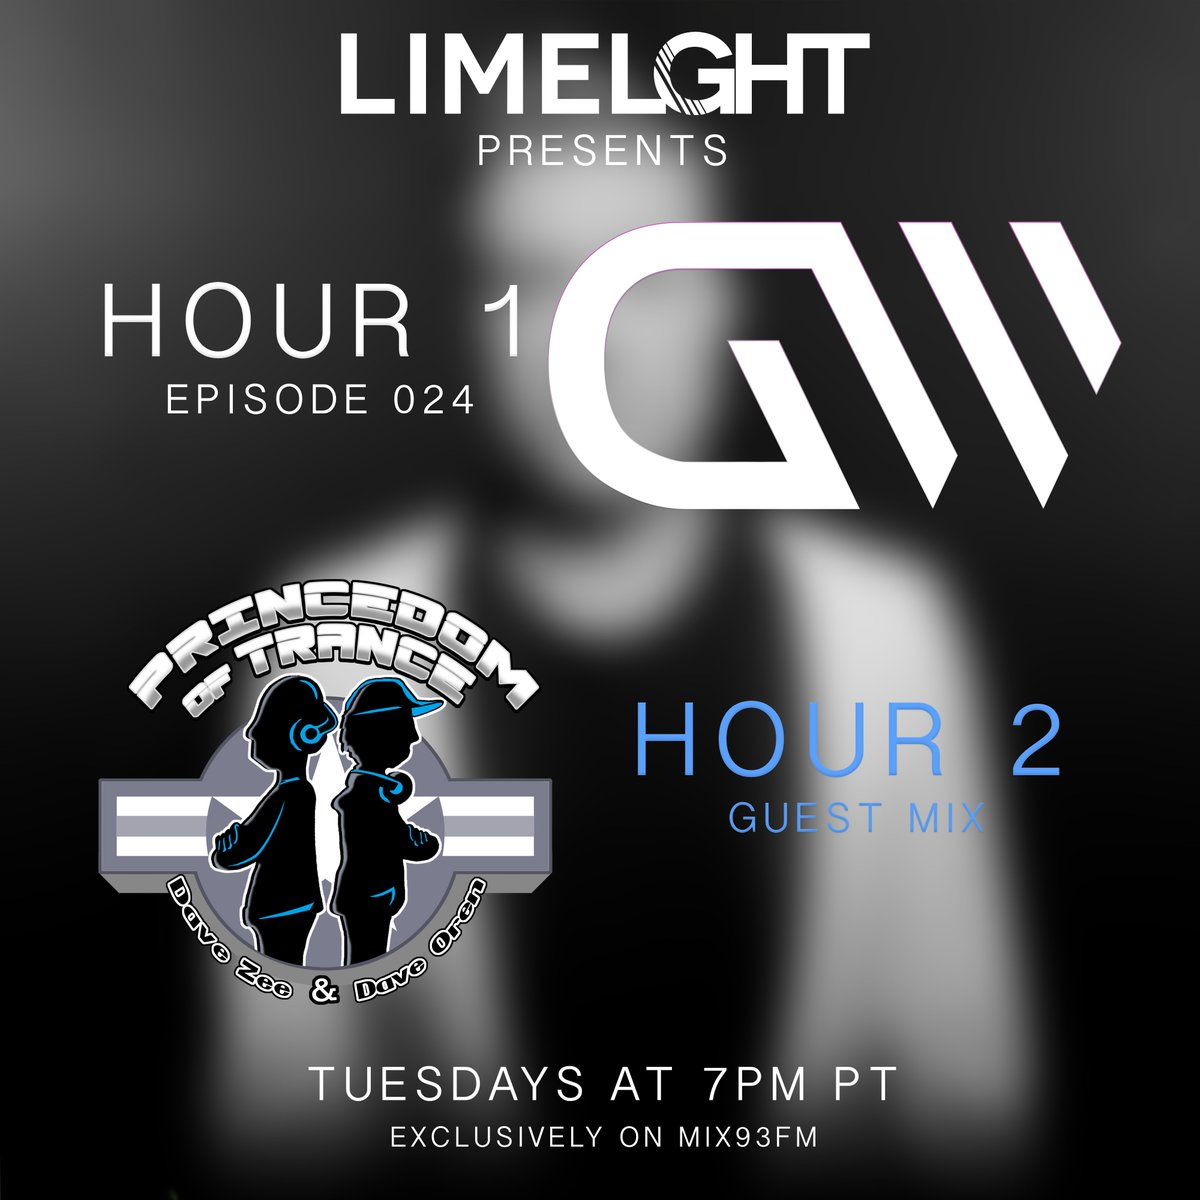 #NowPlaying #LimelghtPresents on #LosAngeles based #DanceStation https://t.co/ZAdSHH07NQ or look for #Mix93fm on free @tunein app with @limelghtoffcl  7pm PST & Dave Zee and Dave Oren  #PrincedomOfTrance at 8pm PST #Trance #Progressive #DanceMusicLivesHere #BdsRadio #MusicHeals https://t.co/t2b4FBB2QW